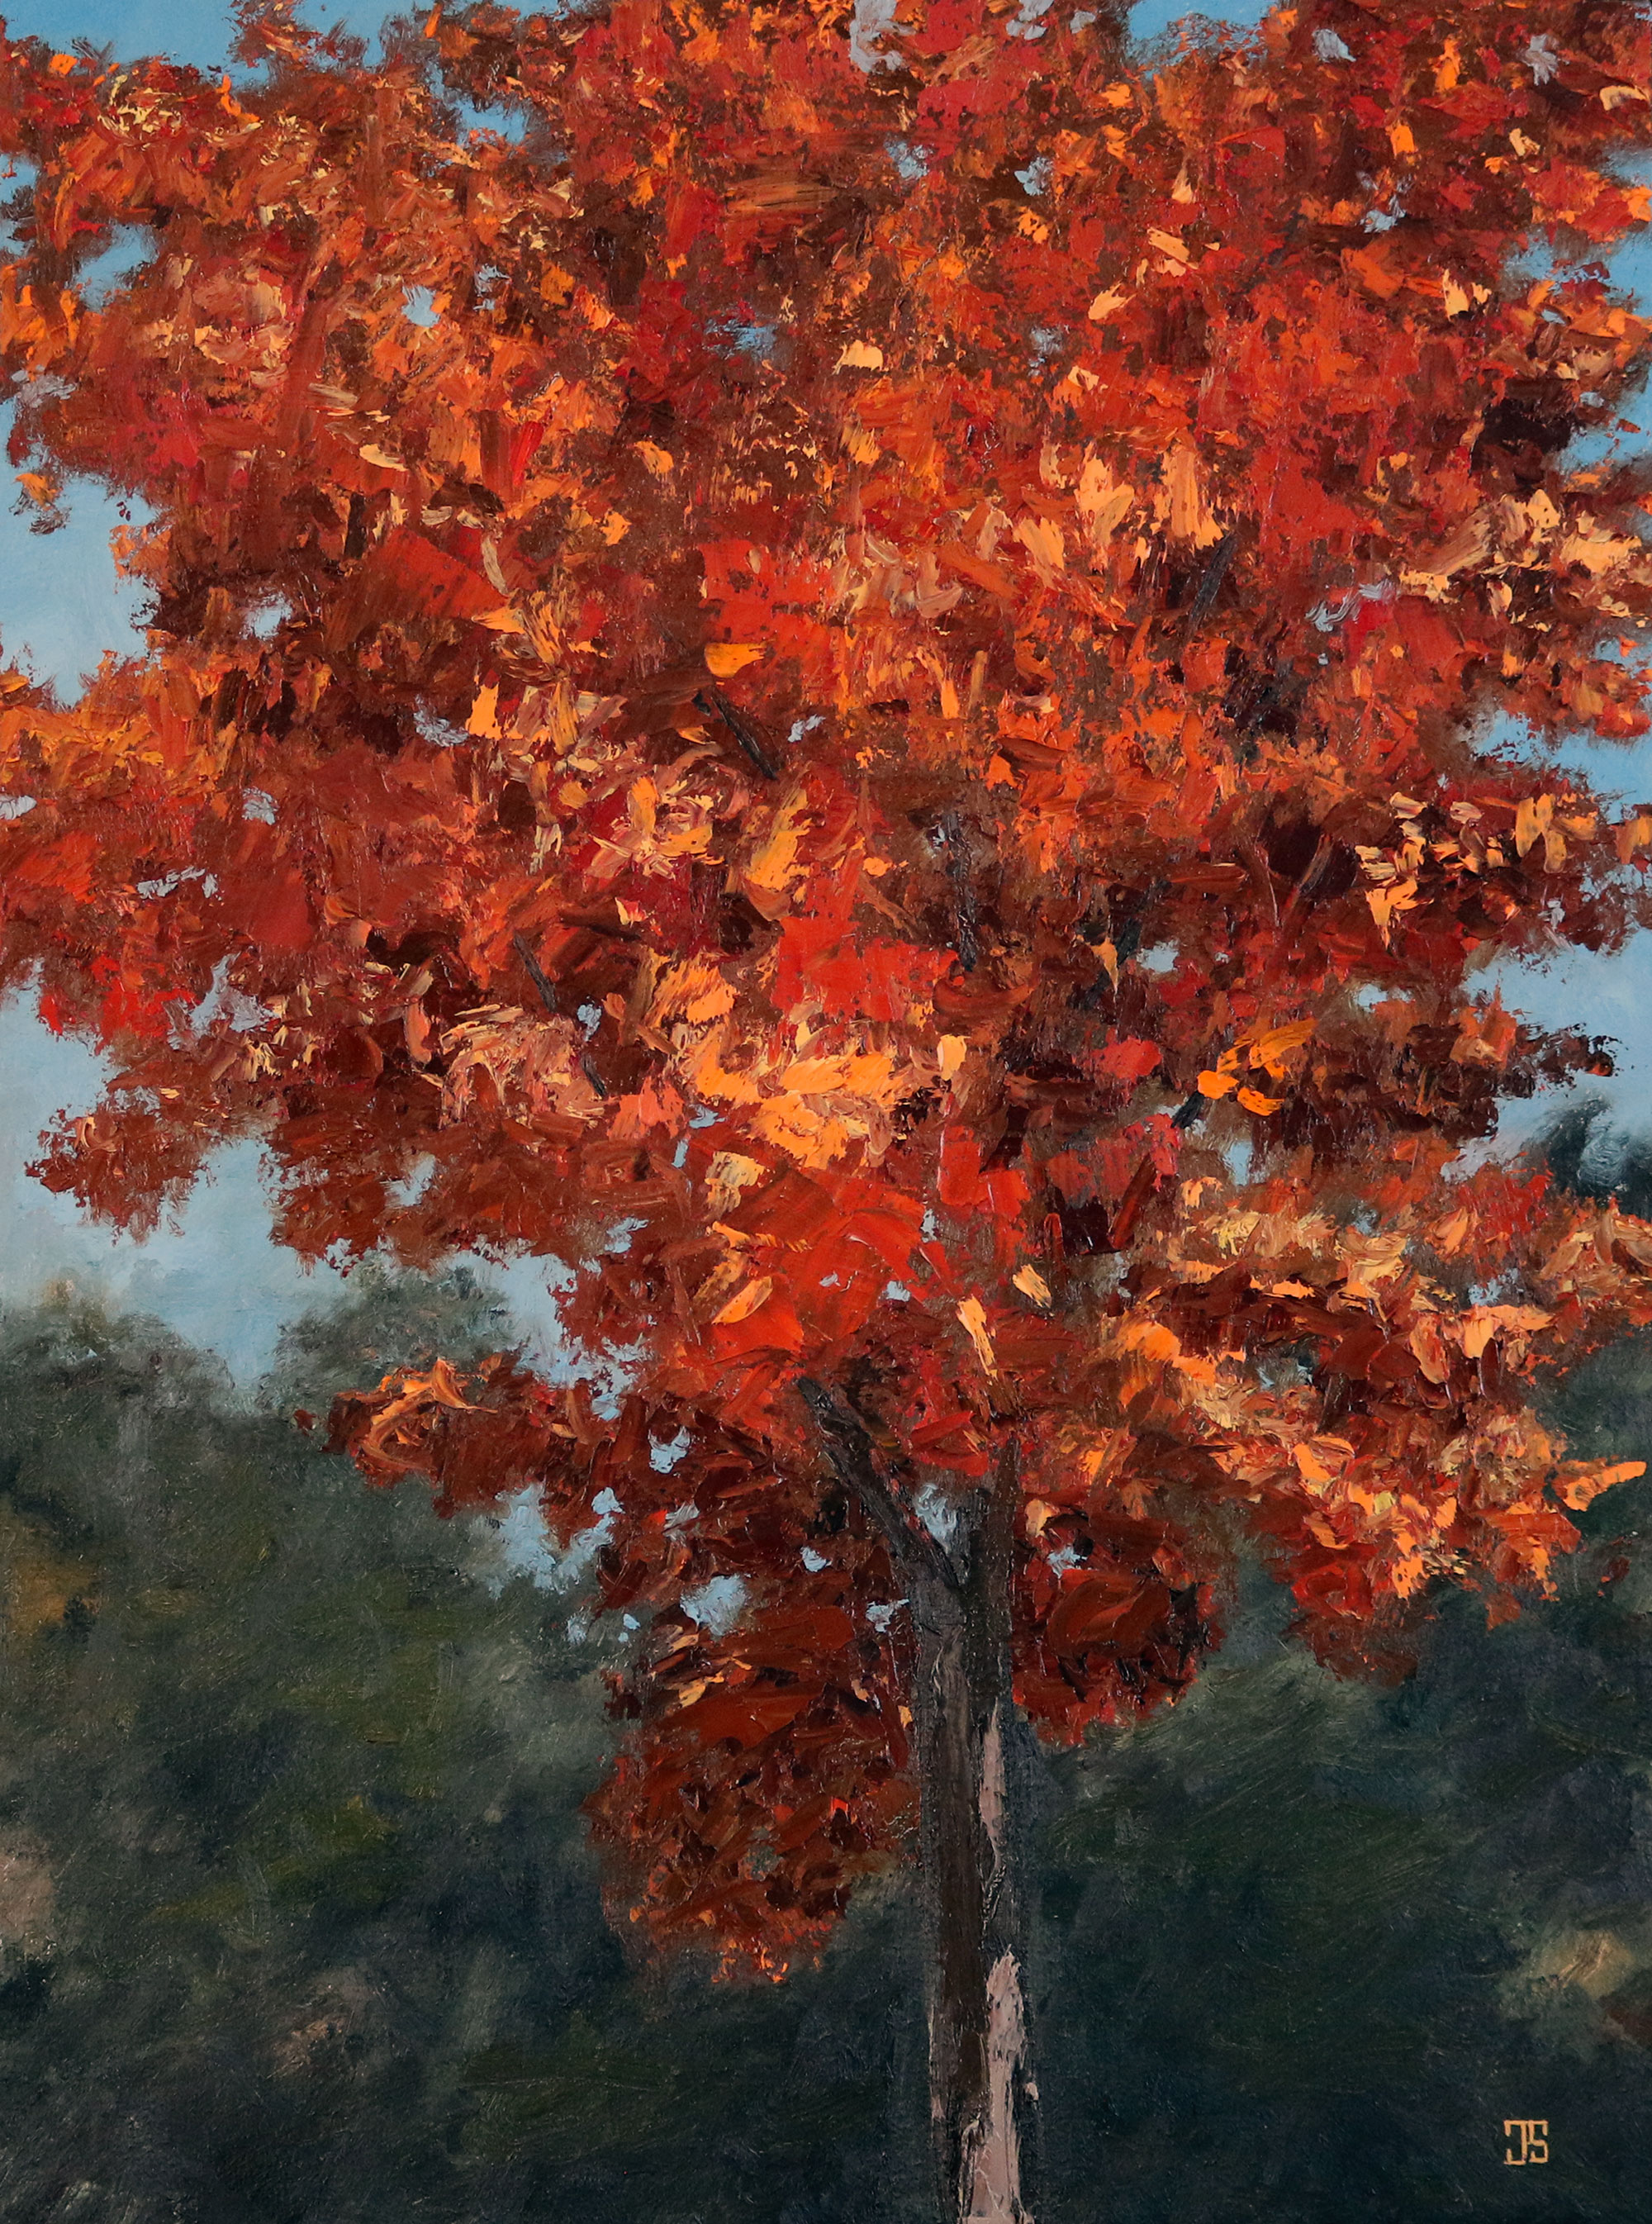 Oil painting of red tree on cape cod by American artist Jeffrey Dale Starr